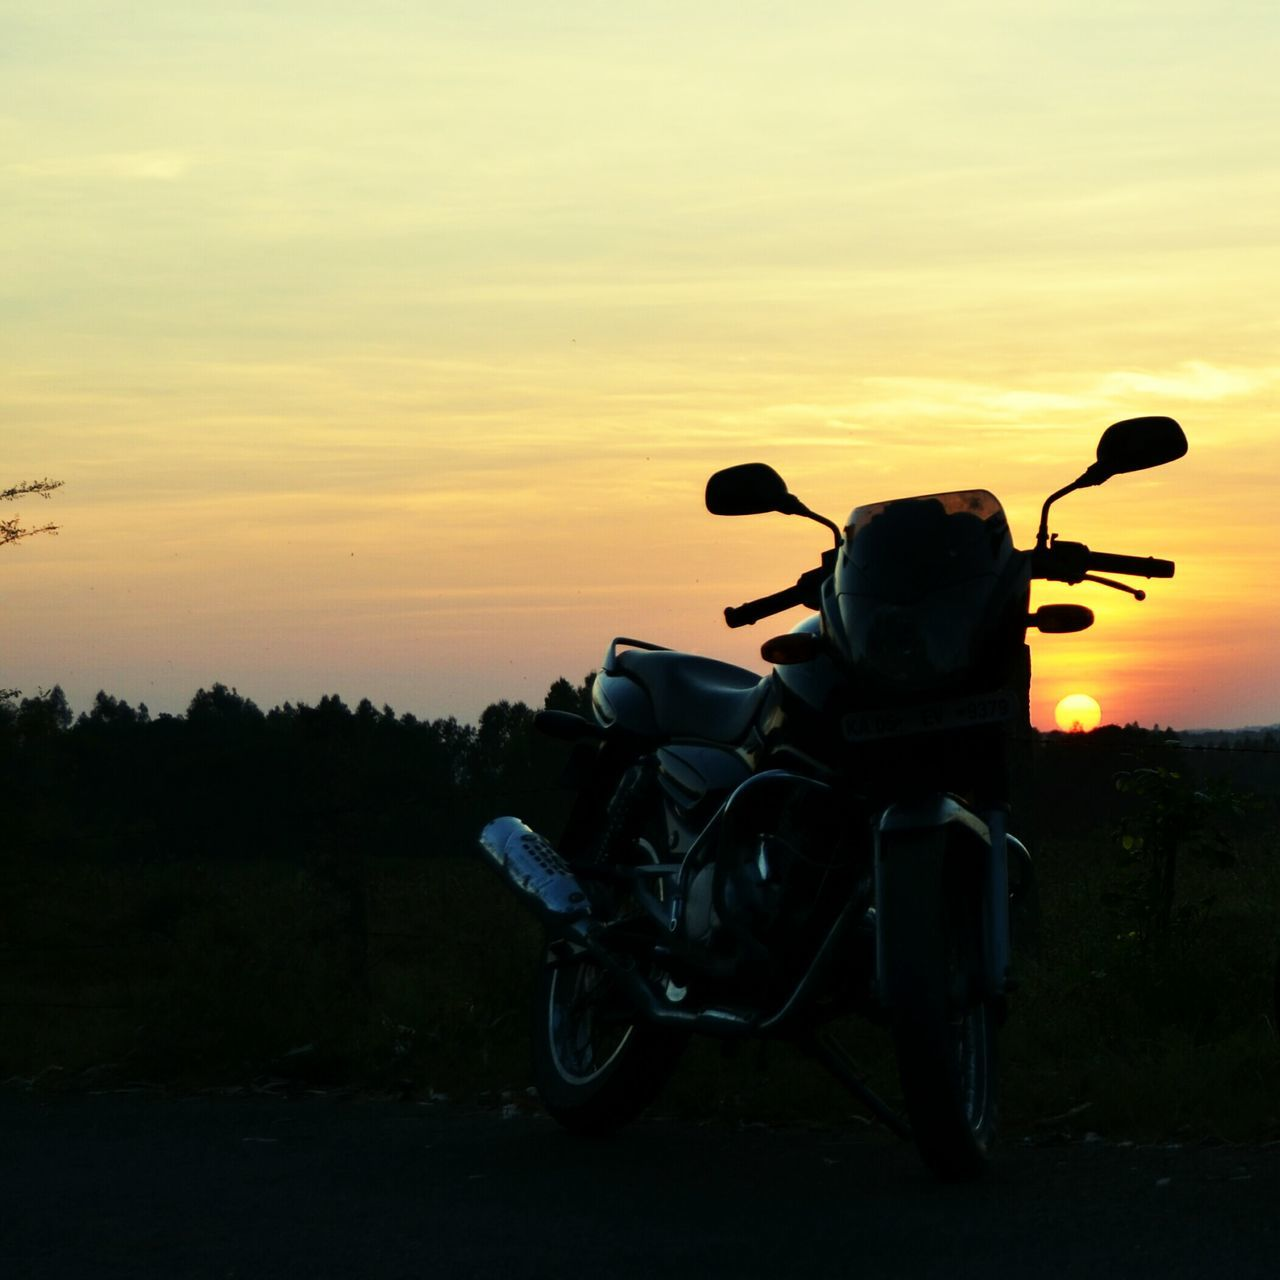 sunset, transportation, orange color, stationary, mode of transport, land vehicle, silhouette, outdoors, sky, no people, motorcycle, nature, beauty in nature, day